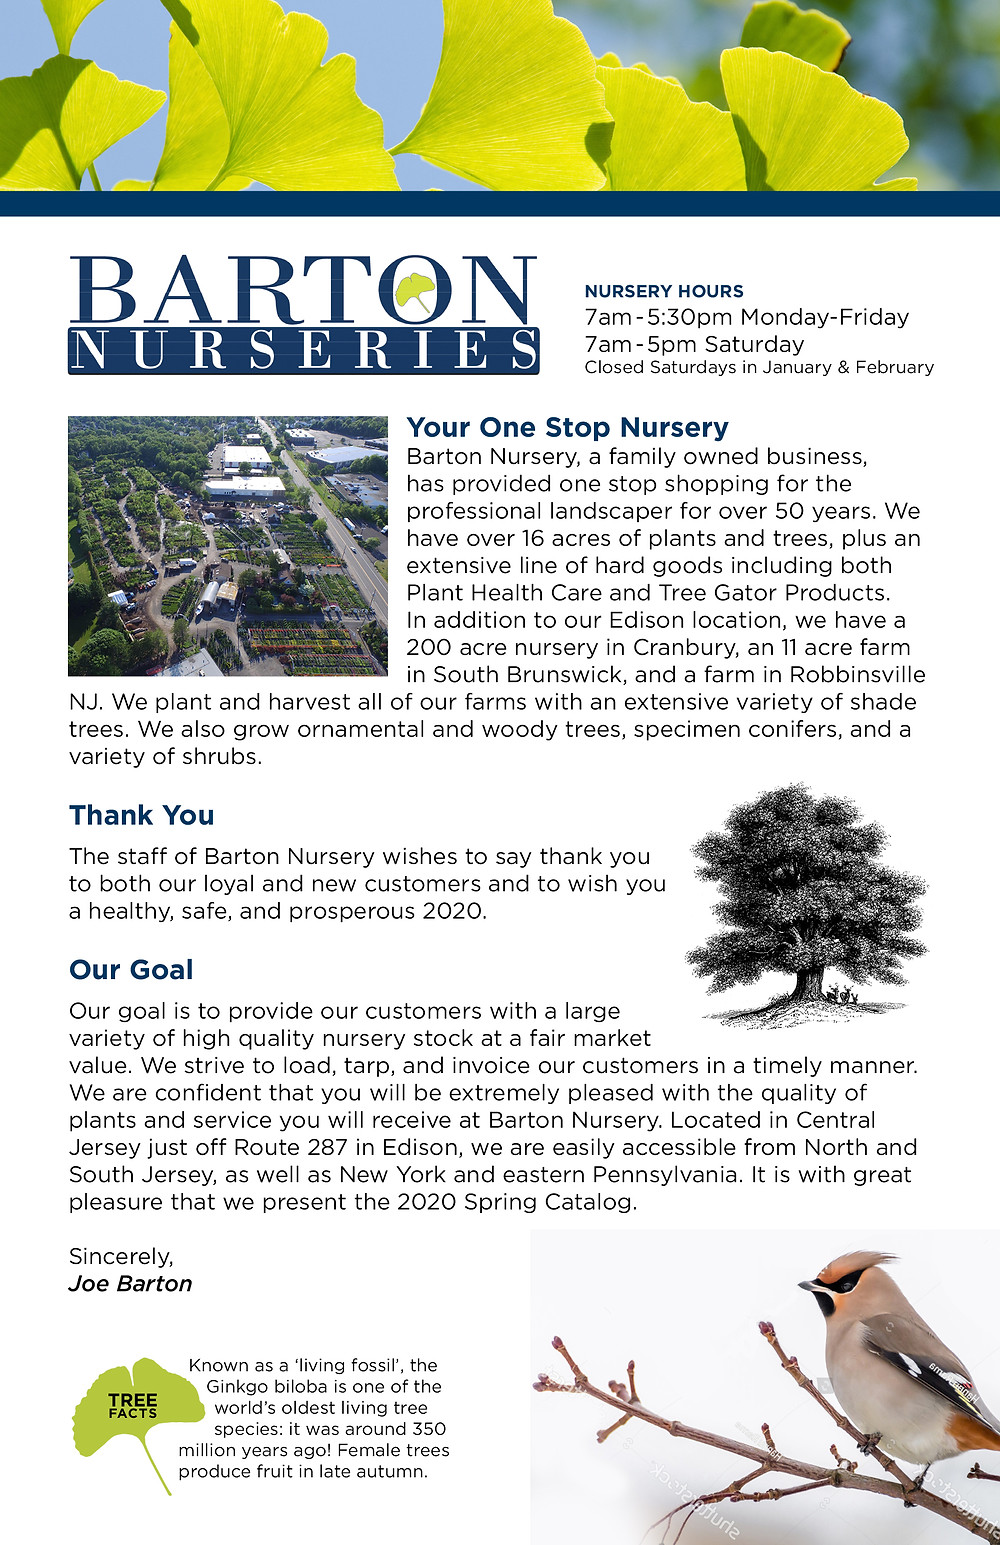 Catalog Designer for Tree Nursery - Barton Nurseries